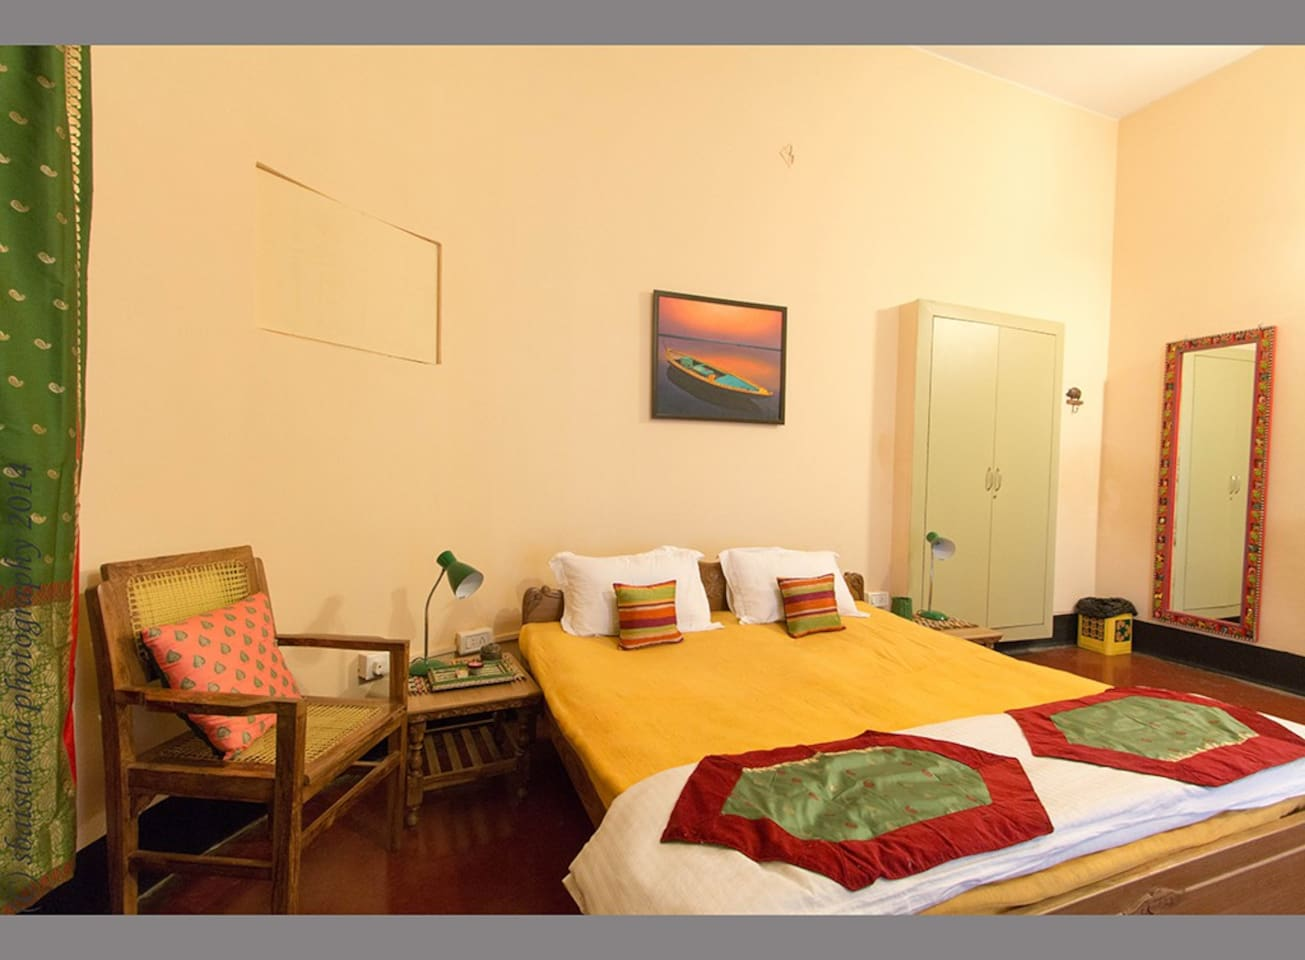 Our cozy room near the ghats